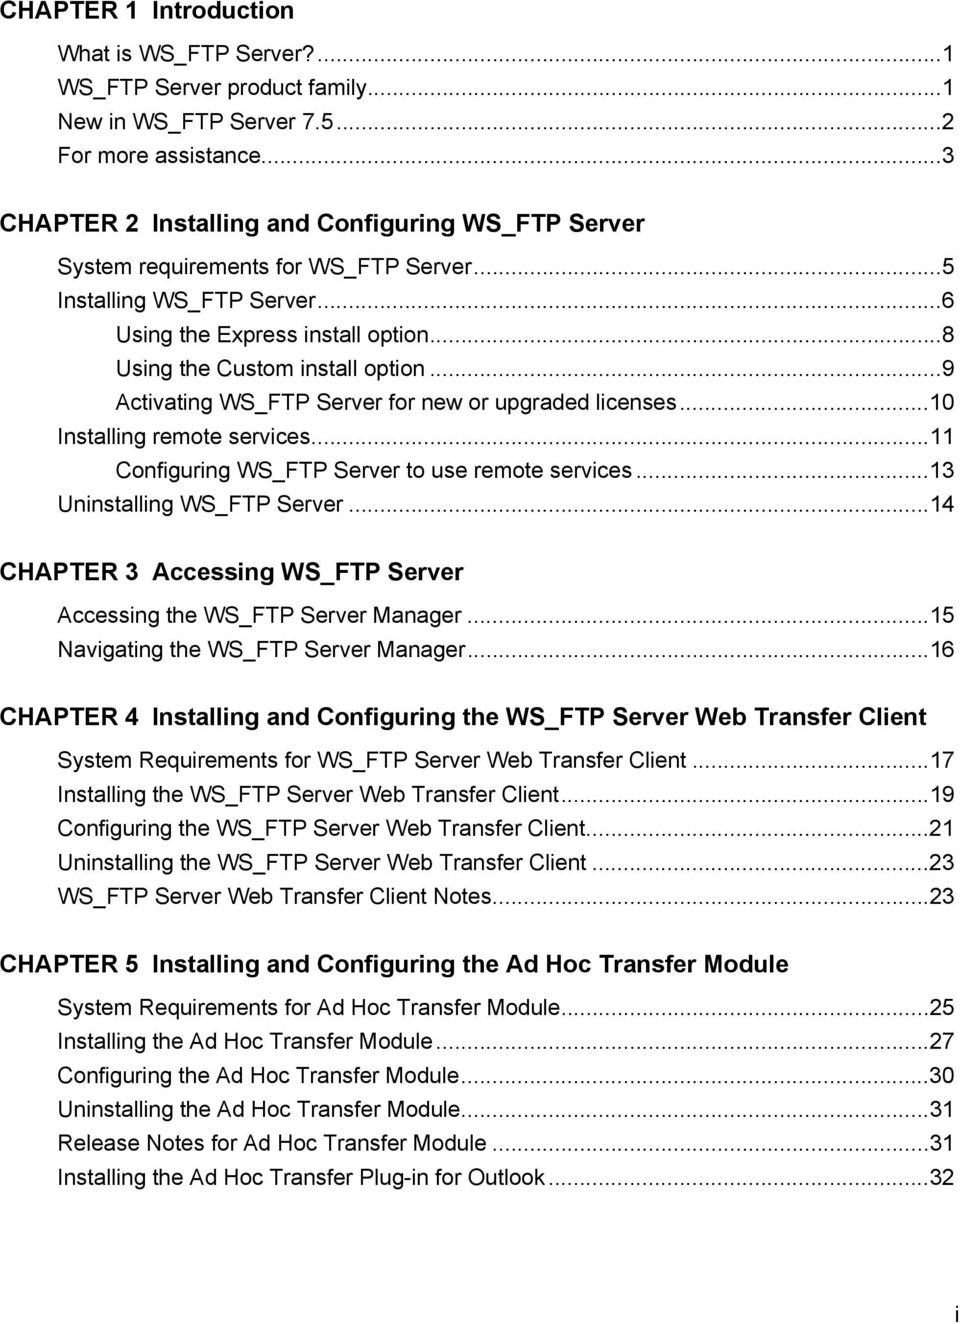 ..9 Activating WS_FTP Server for new or upgraded licenses...10 Installing remote services...11 Configuring WS_FTP Server to use remote services...13 Uninstalling WS_FTP Server.